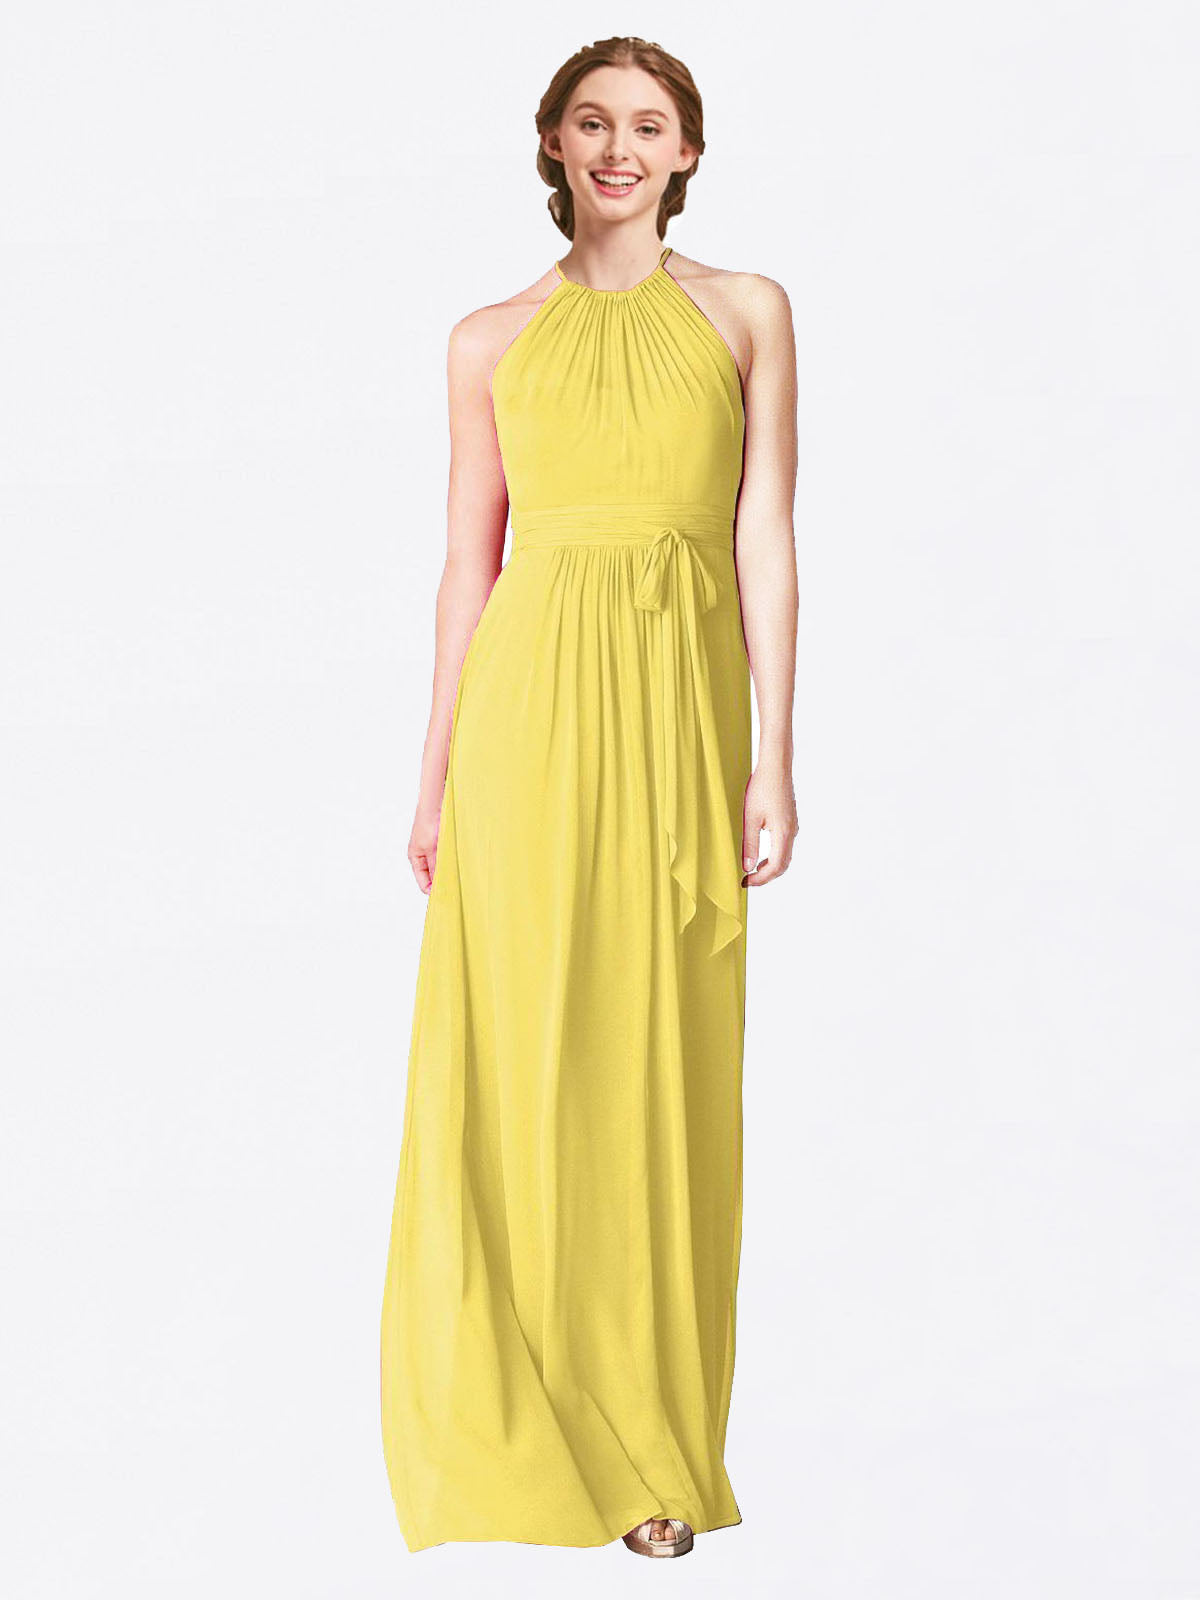 Long A-Line Halter Sleeveless Yellow Chiffon Bridesmaid Dress Laura